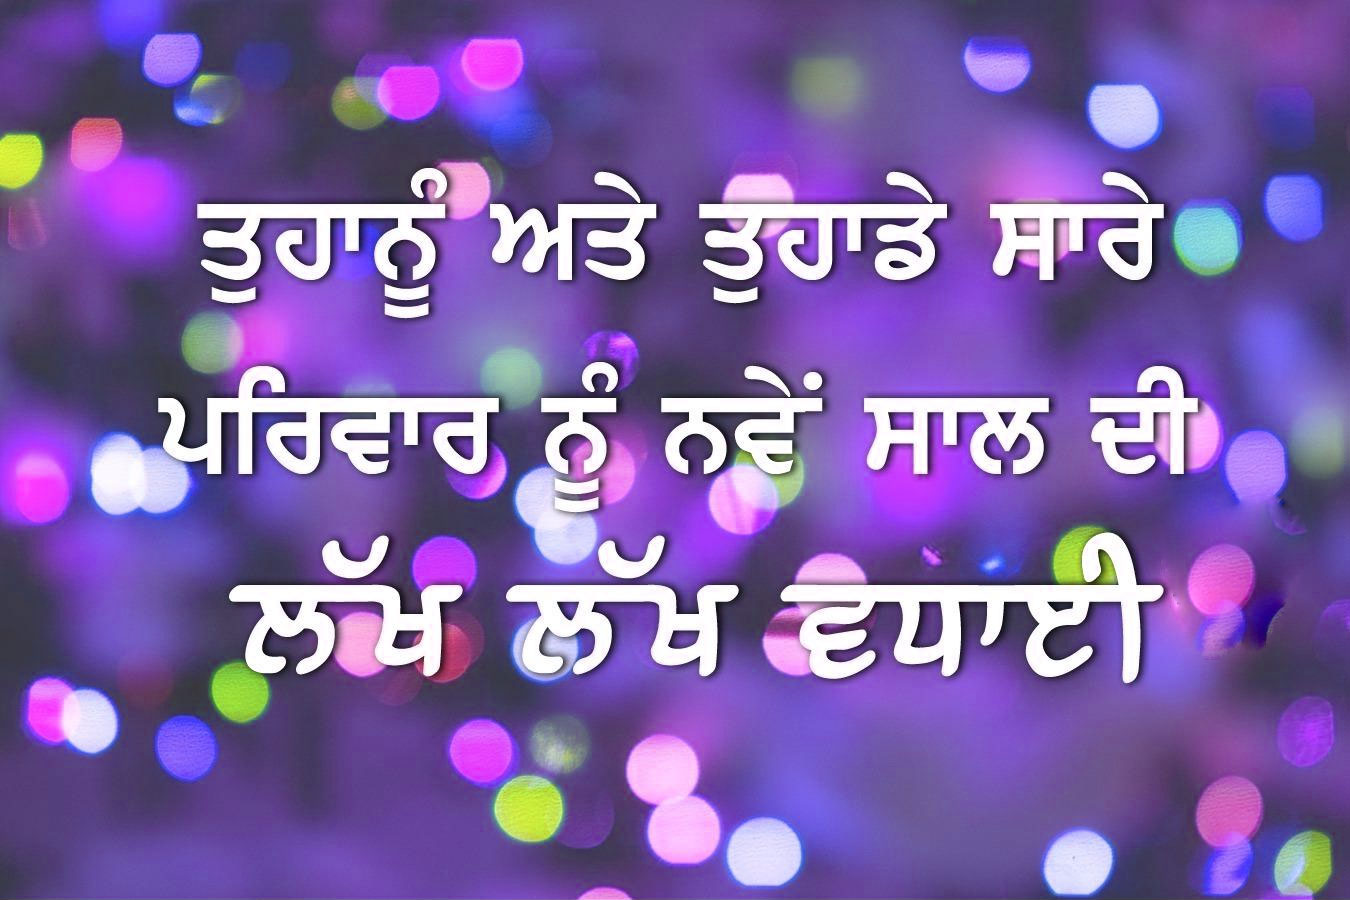 Happy New Year 2018 Wishes In Punjabi New Year Punjabi Messages